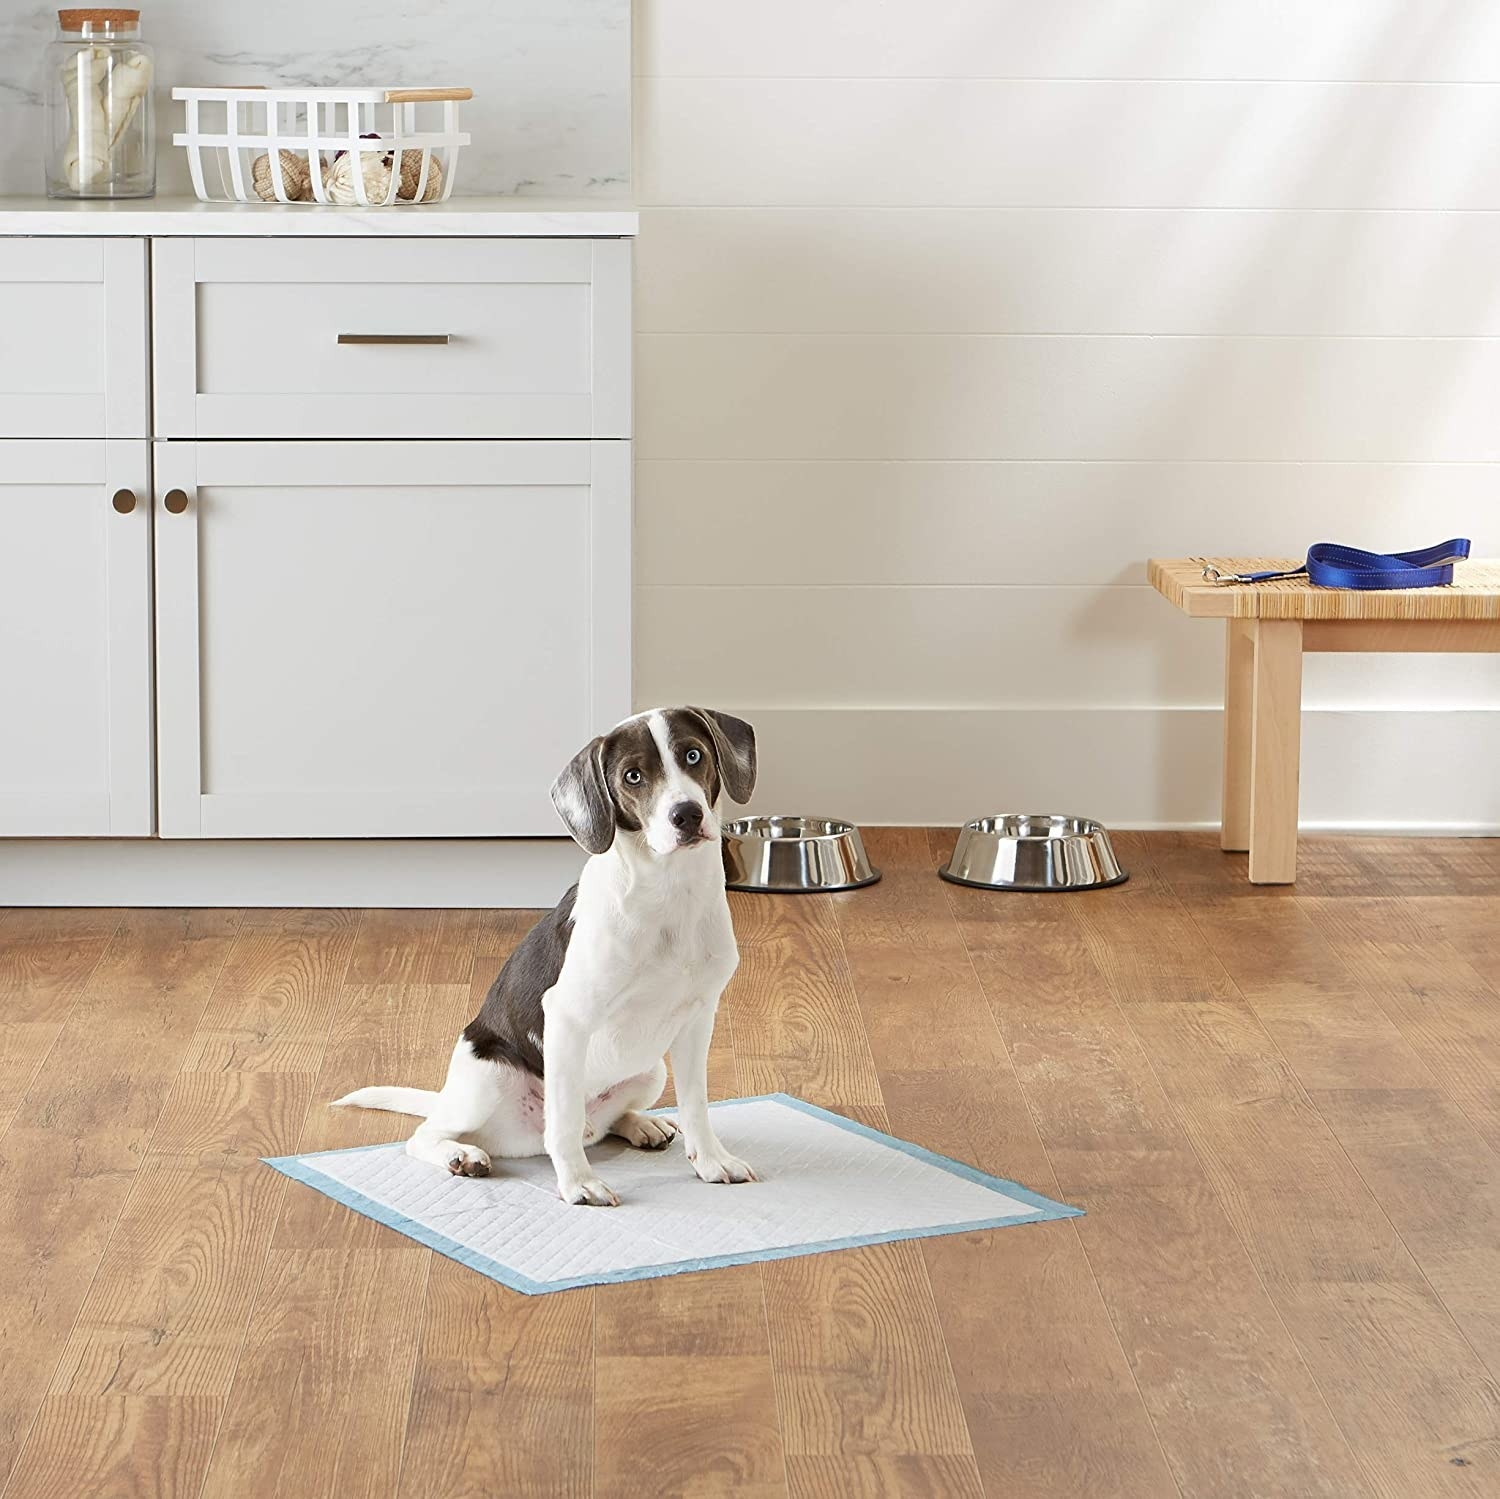 Dog sitting on puppy pad placed on floor